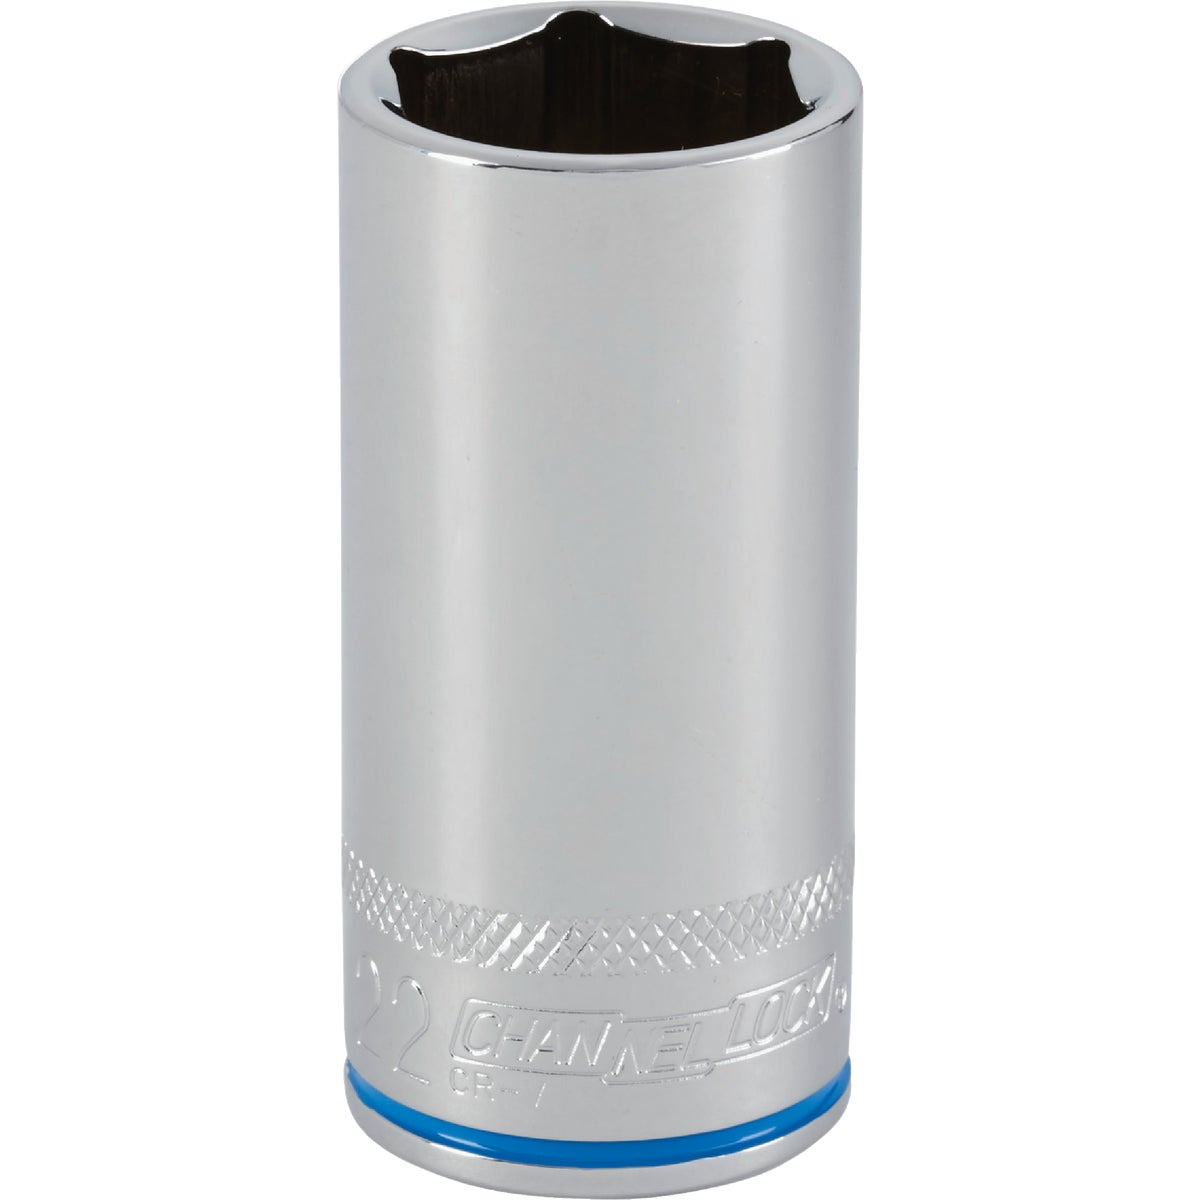 "22MM 3/8"" DR DEEP SOCKET - 397911 by Do it Best"